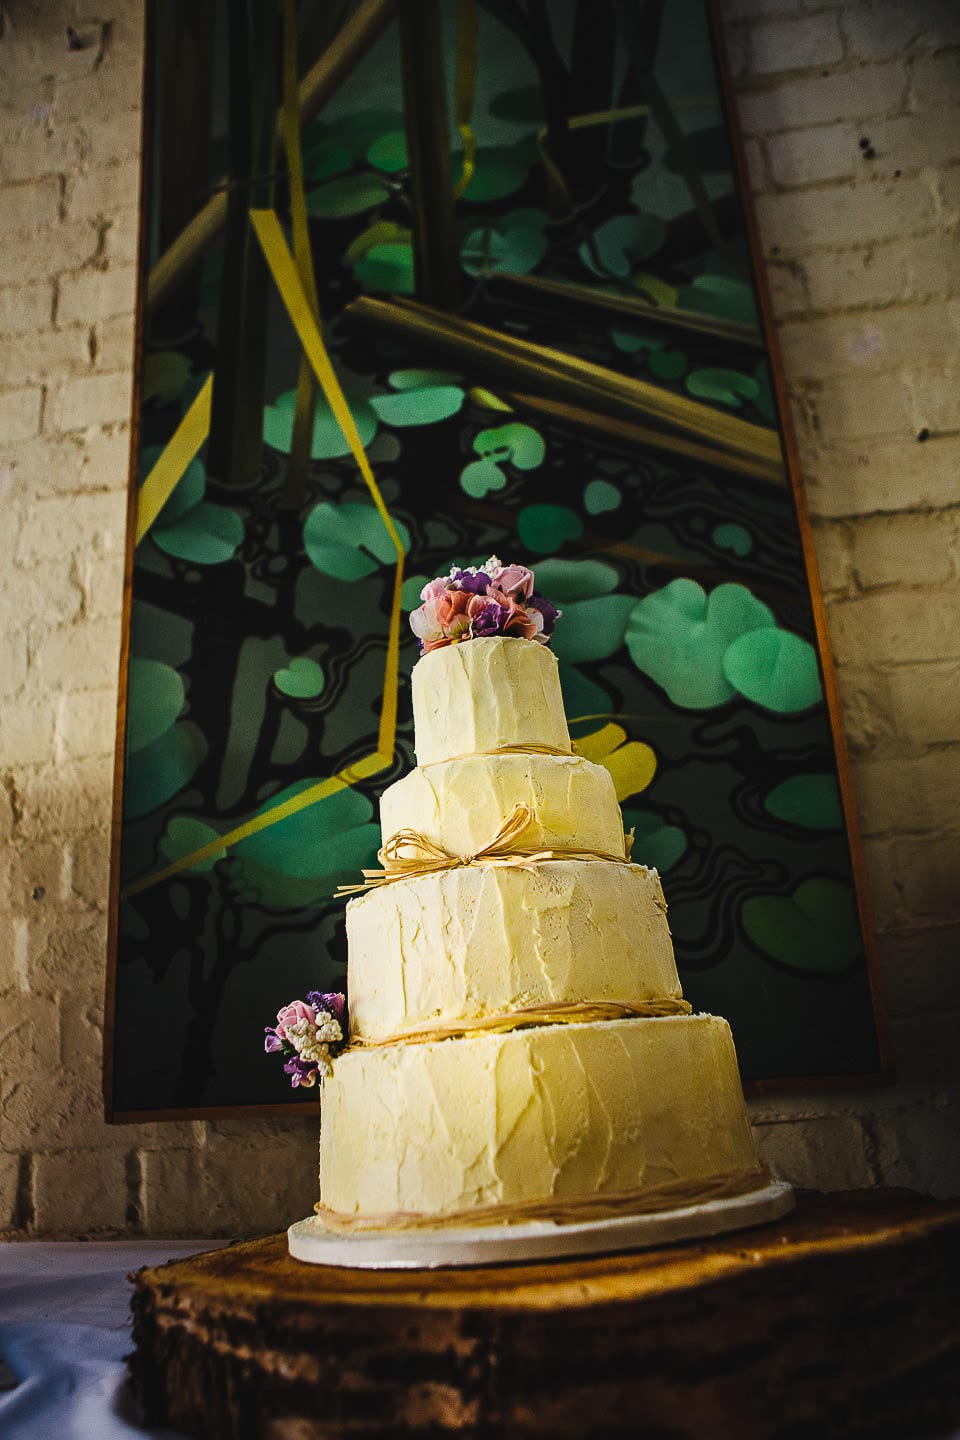 Wedding cake ready to be cut at Abbey House Gardens